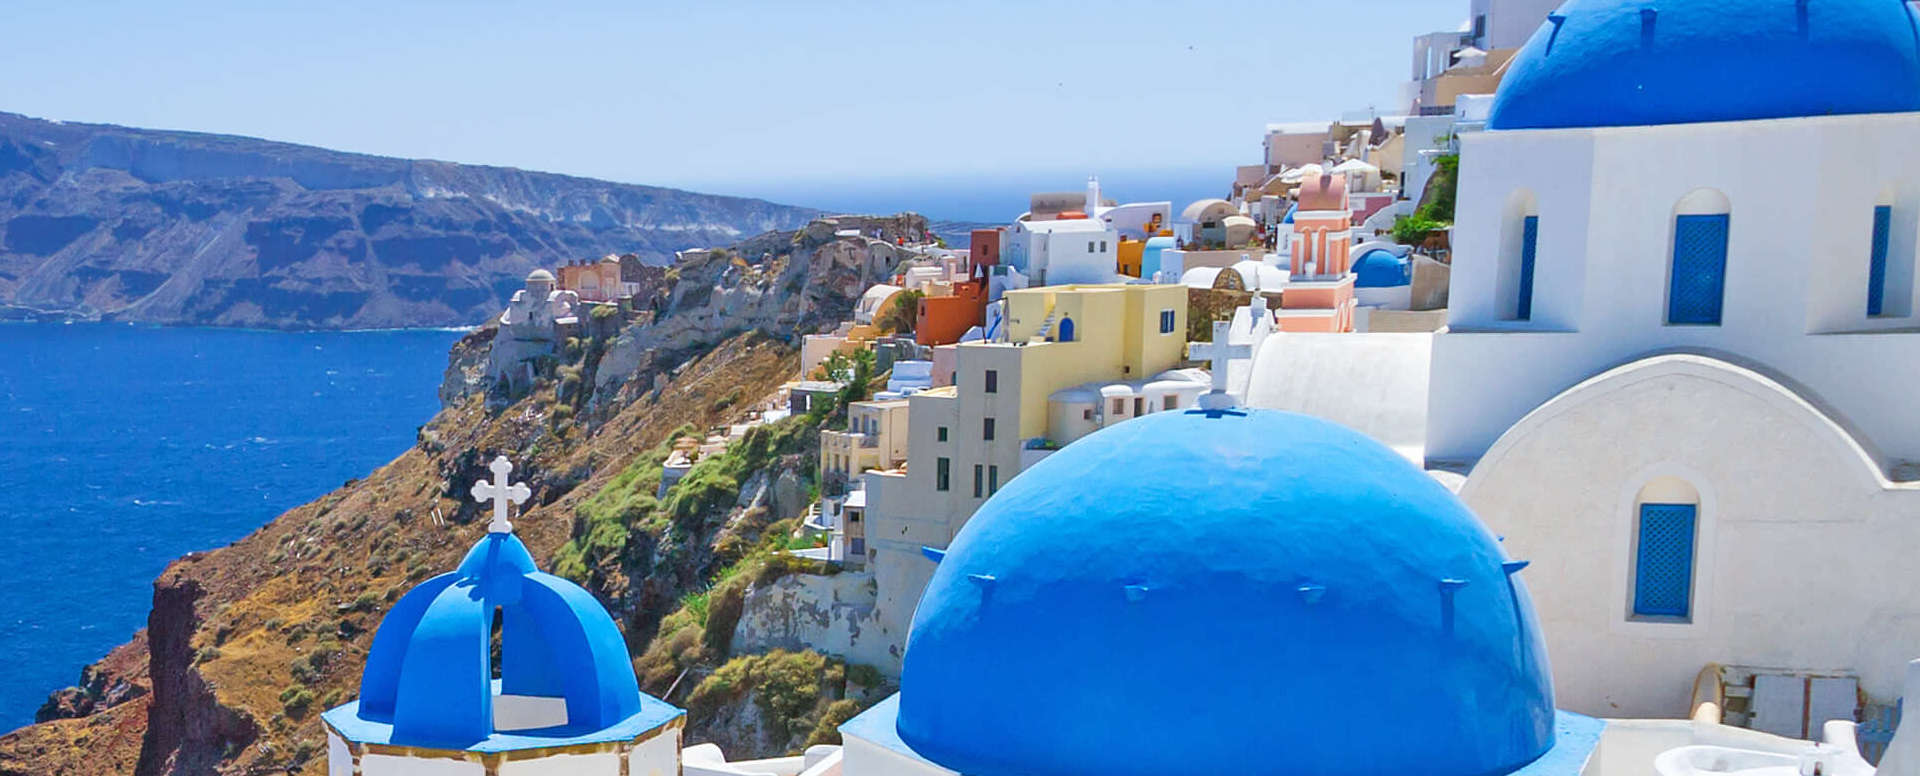 What to do in Greece? Activity Guide - Greece